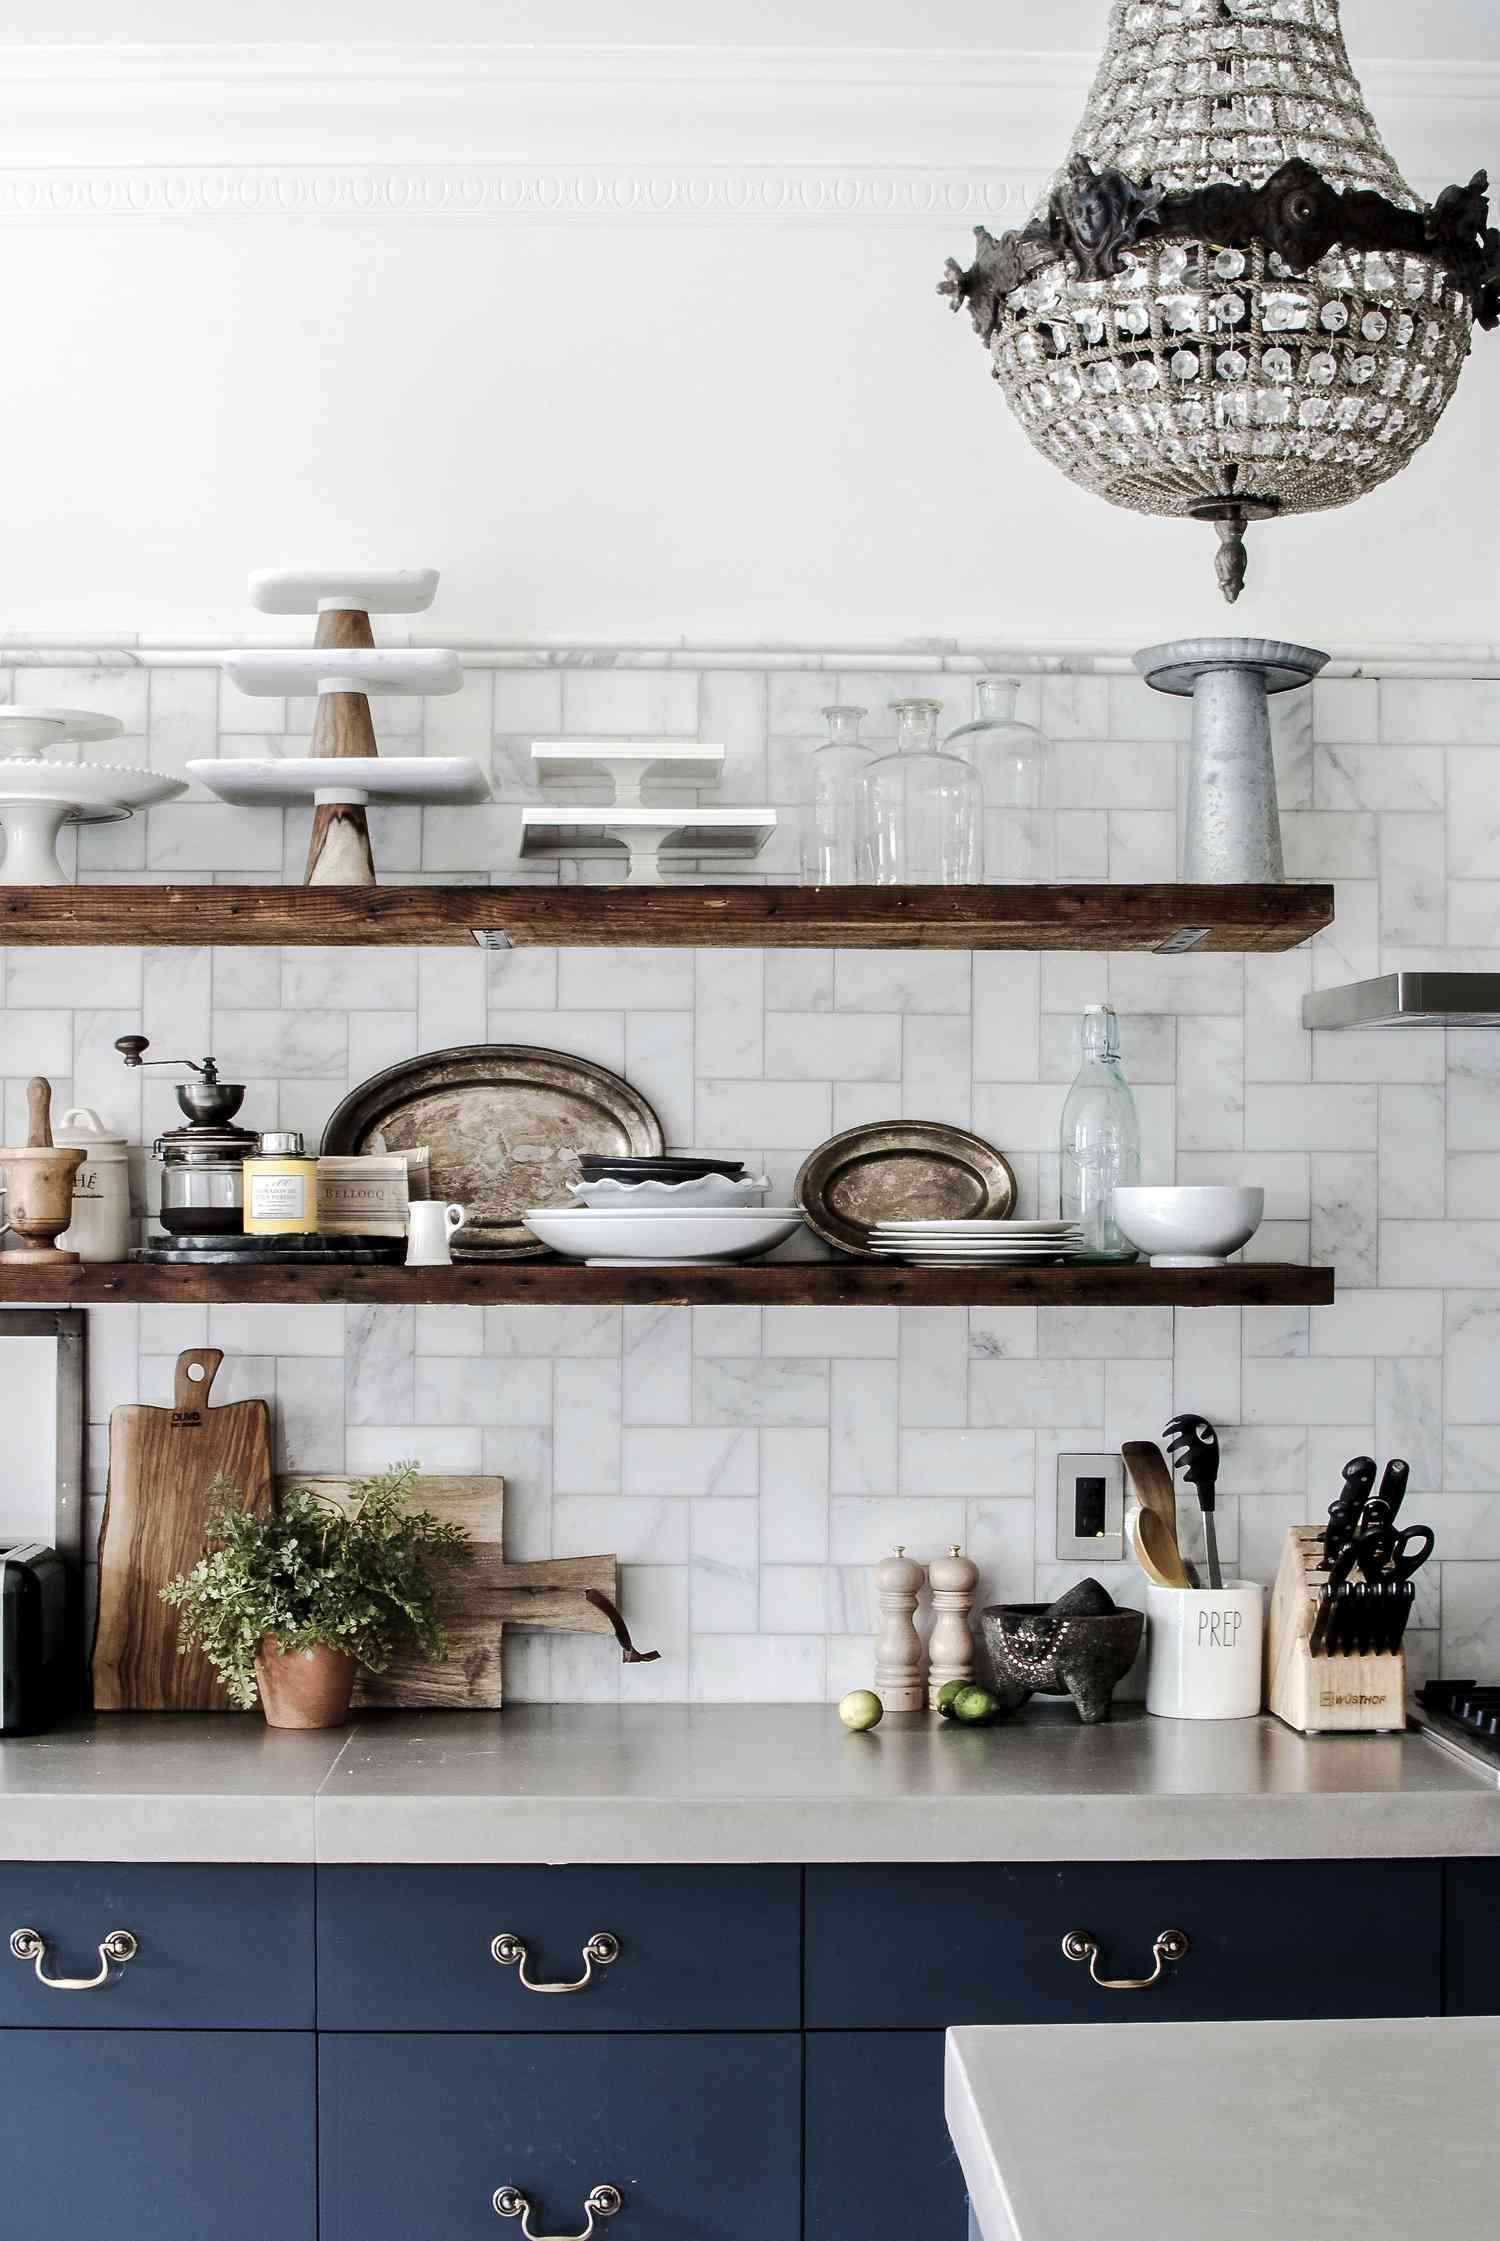 A kitchen backsplash lined with marble tiles